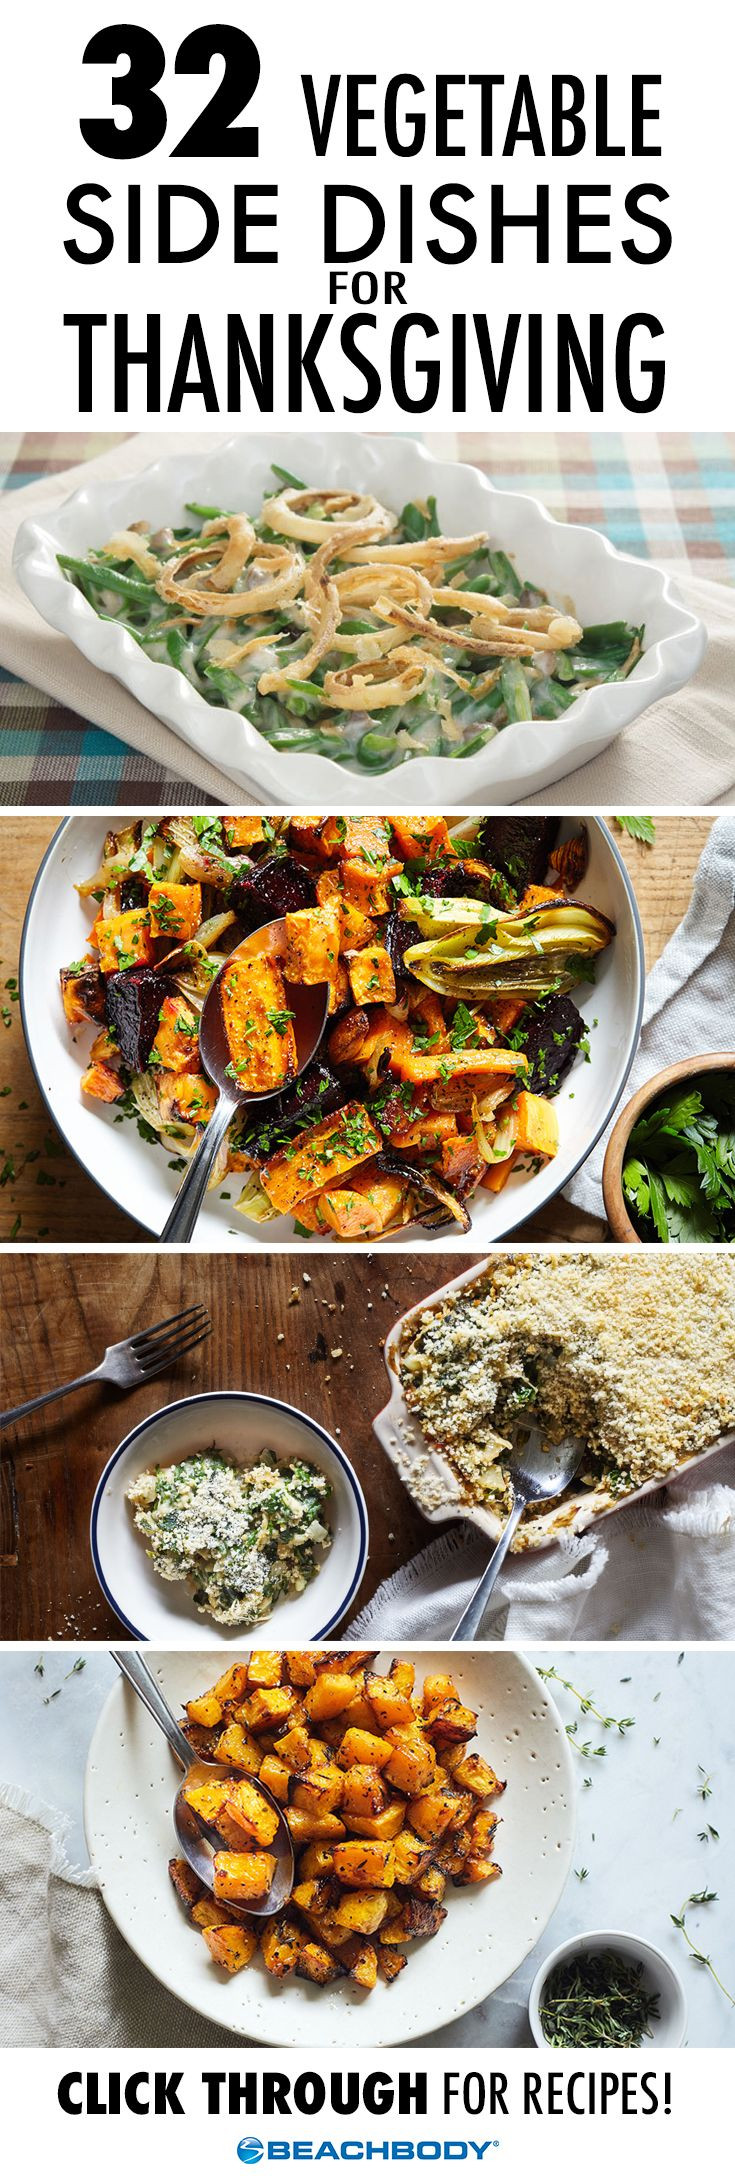 Vegetarian Thanksgiving Side Dishes  837 best images about Healthy Recipes on Pinterest